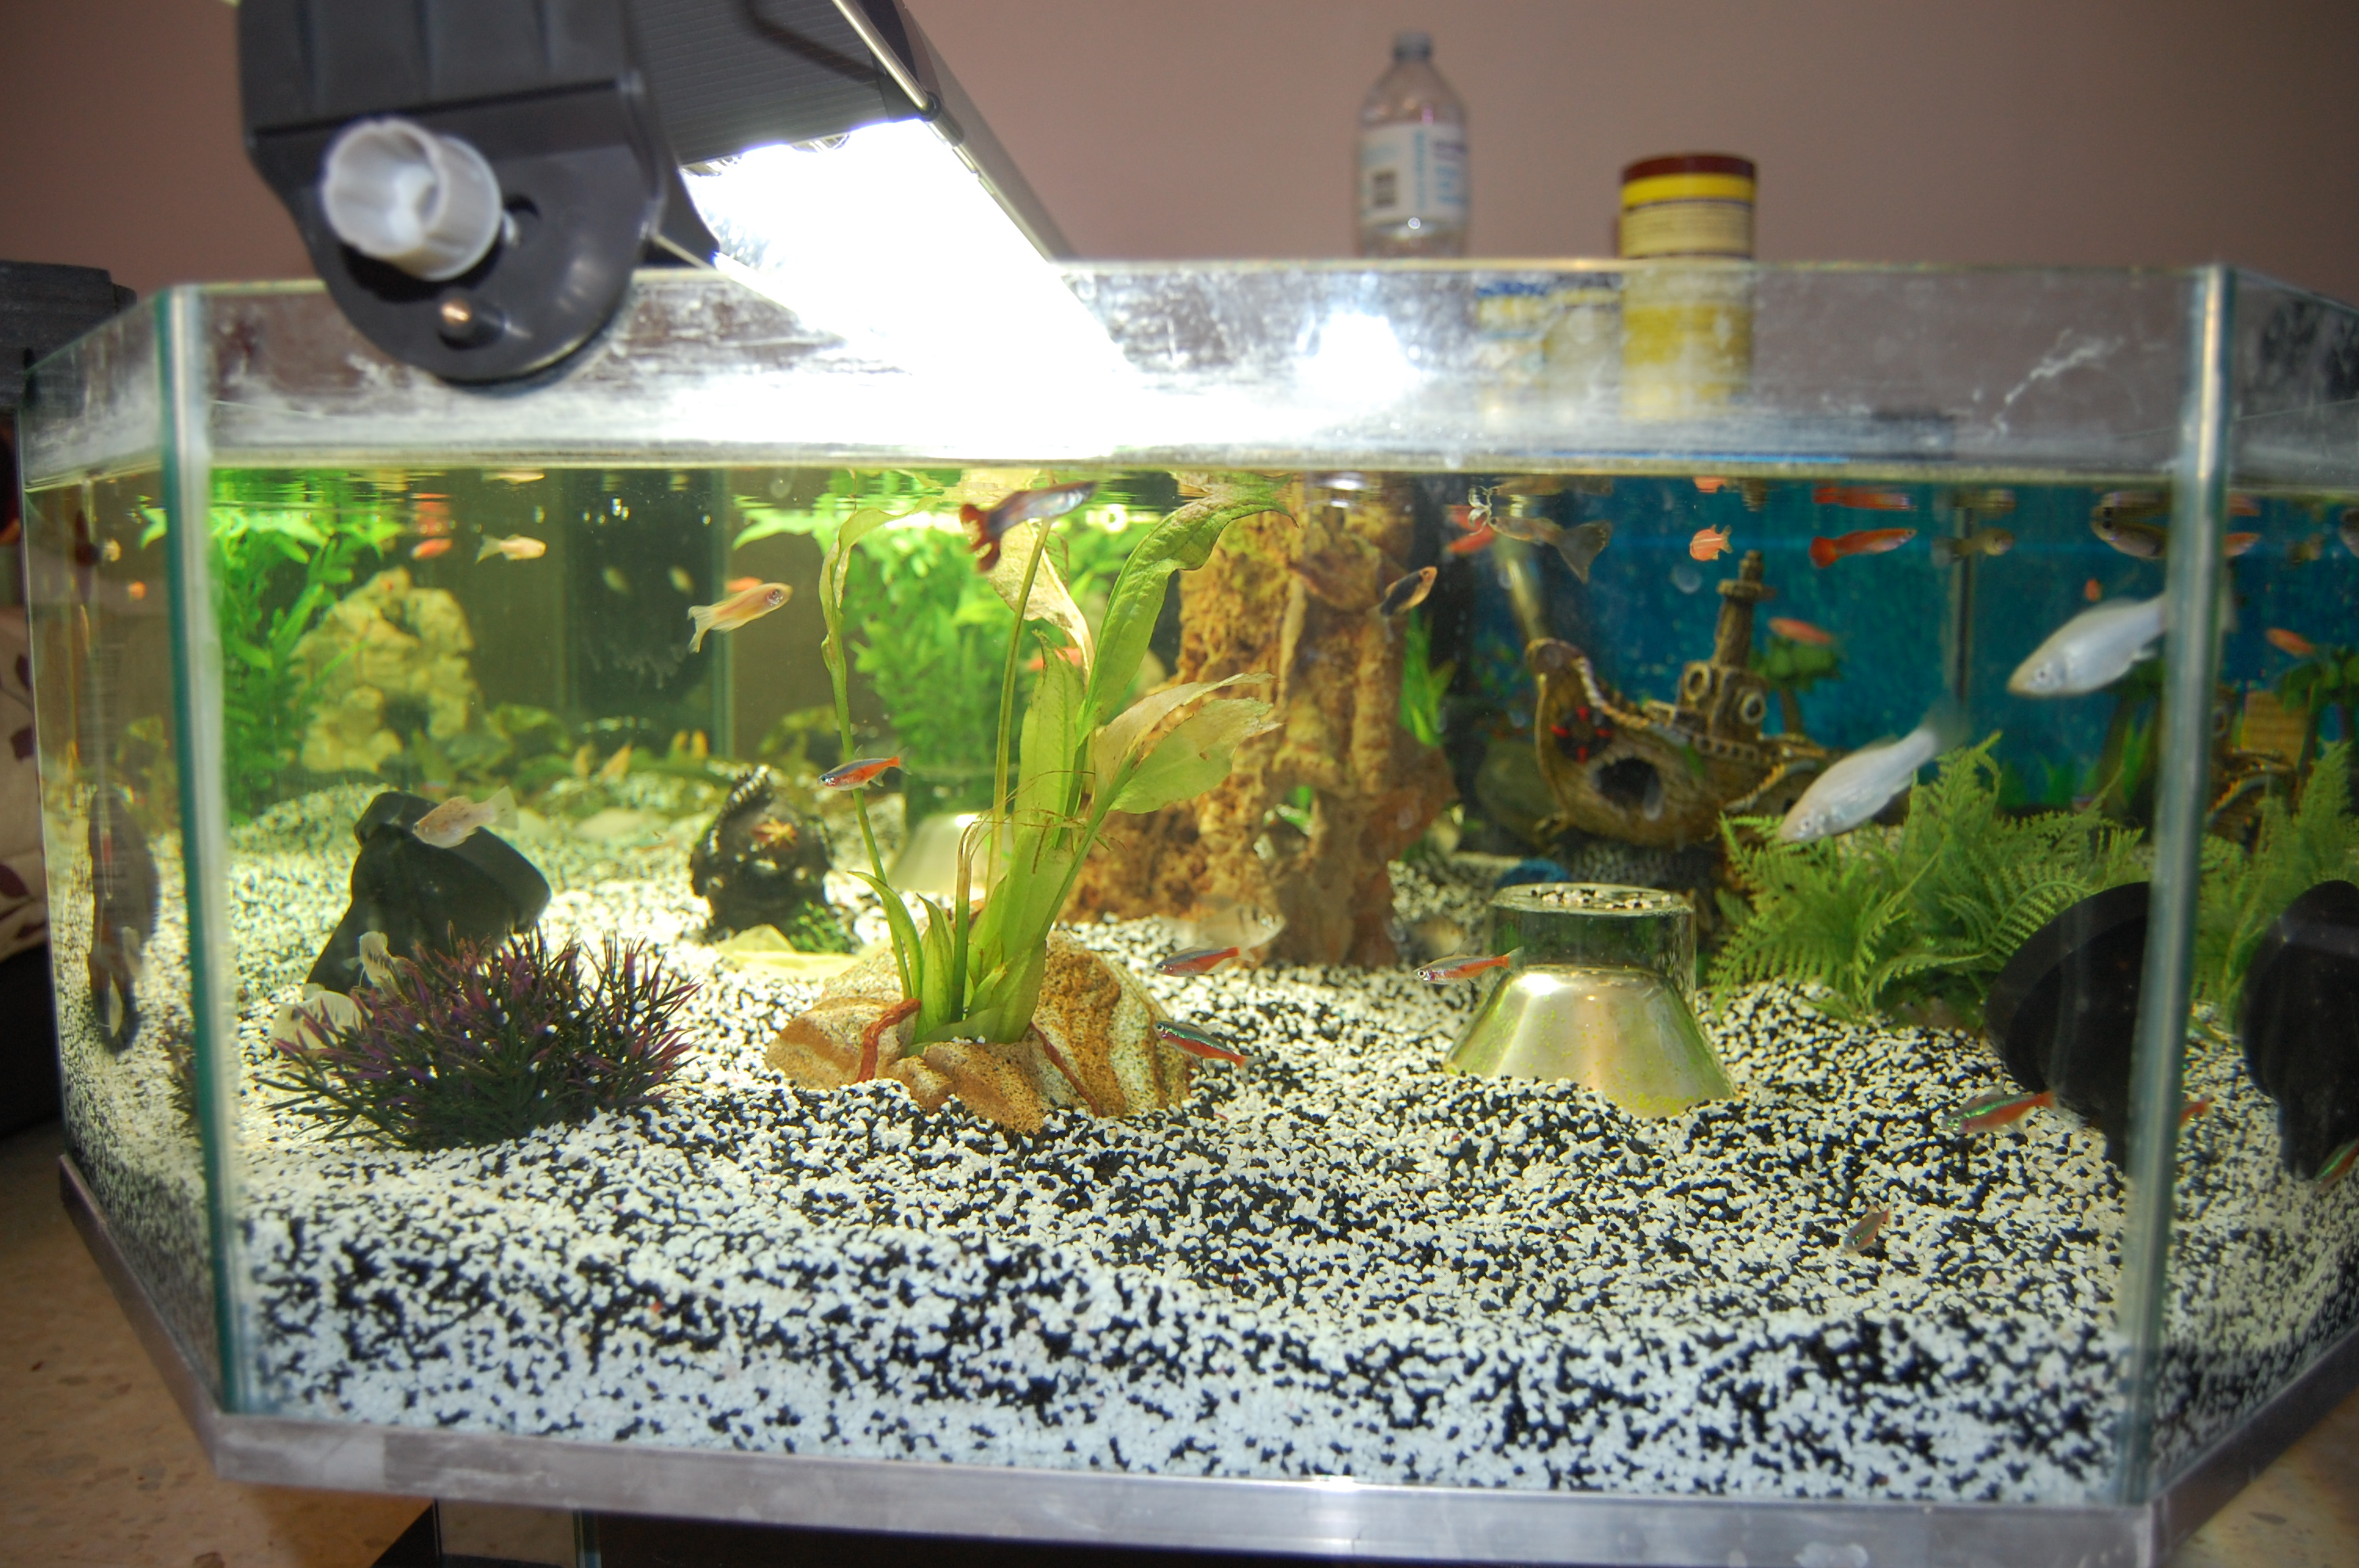 Dsc 0016 table basse aquarium fait maison lol lynka83 - Table basse faite maison ...